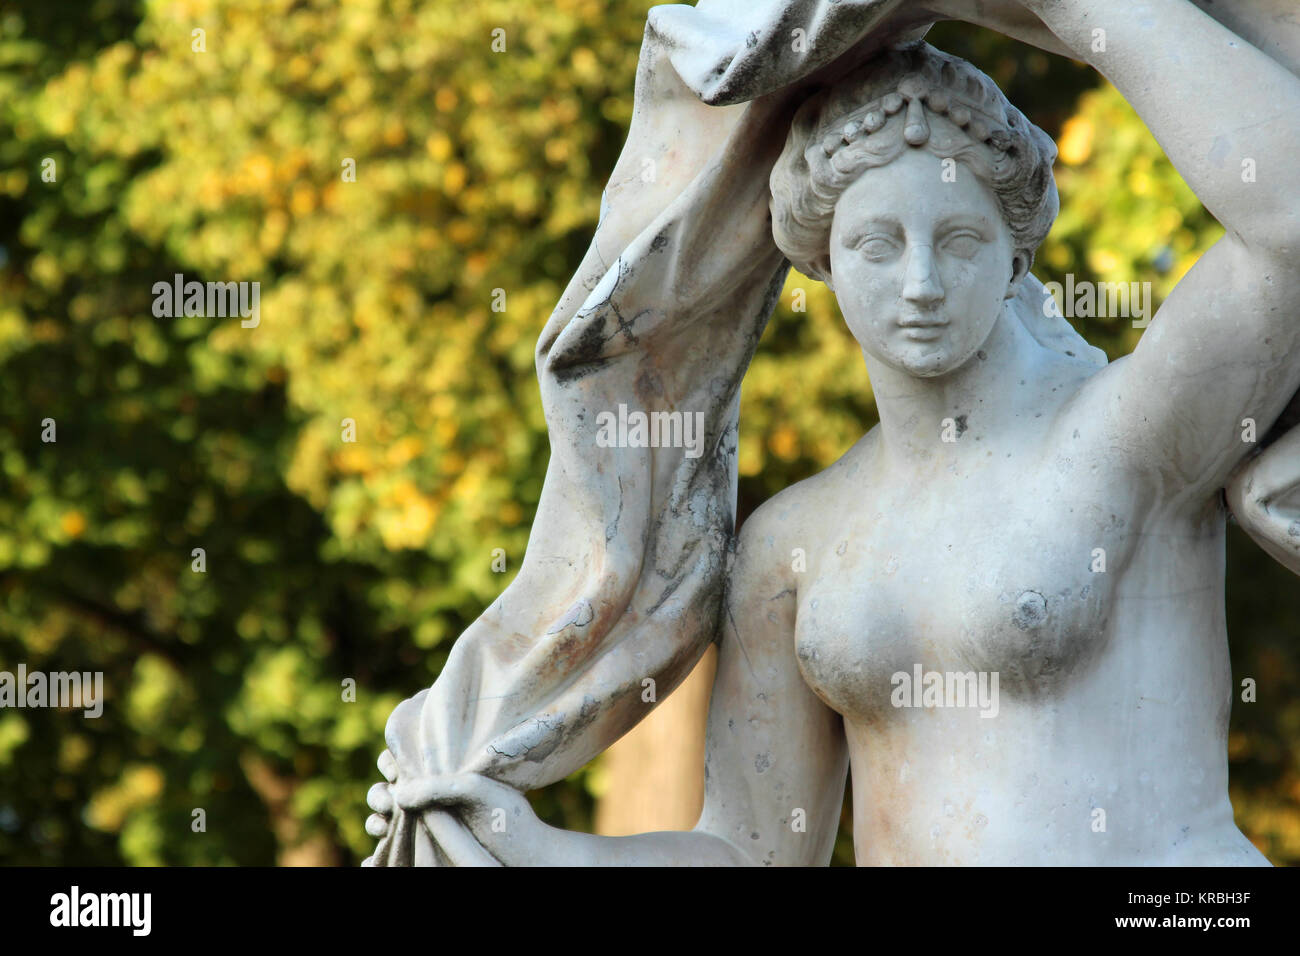 Antique stone statue of the goddess Galatea in the Catherine park, Pushkin, St. Petersburg - Stock Image